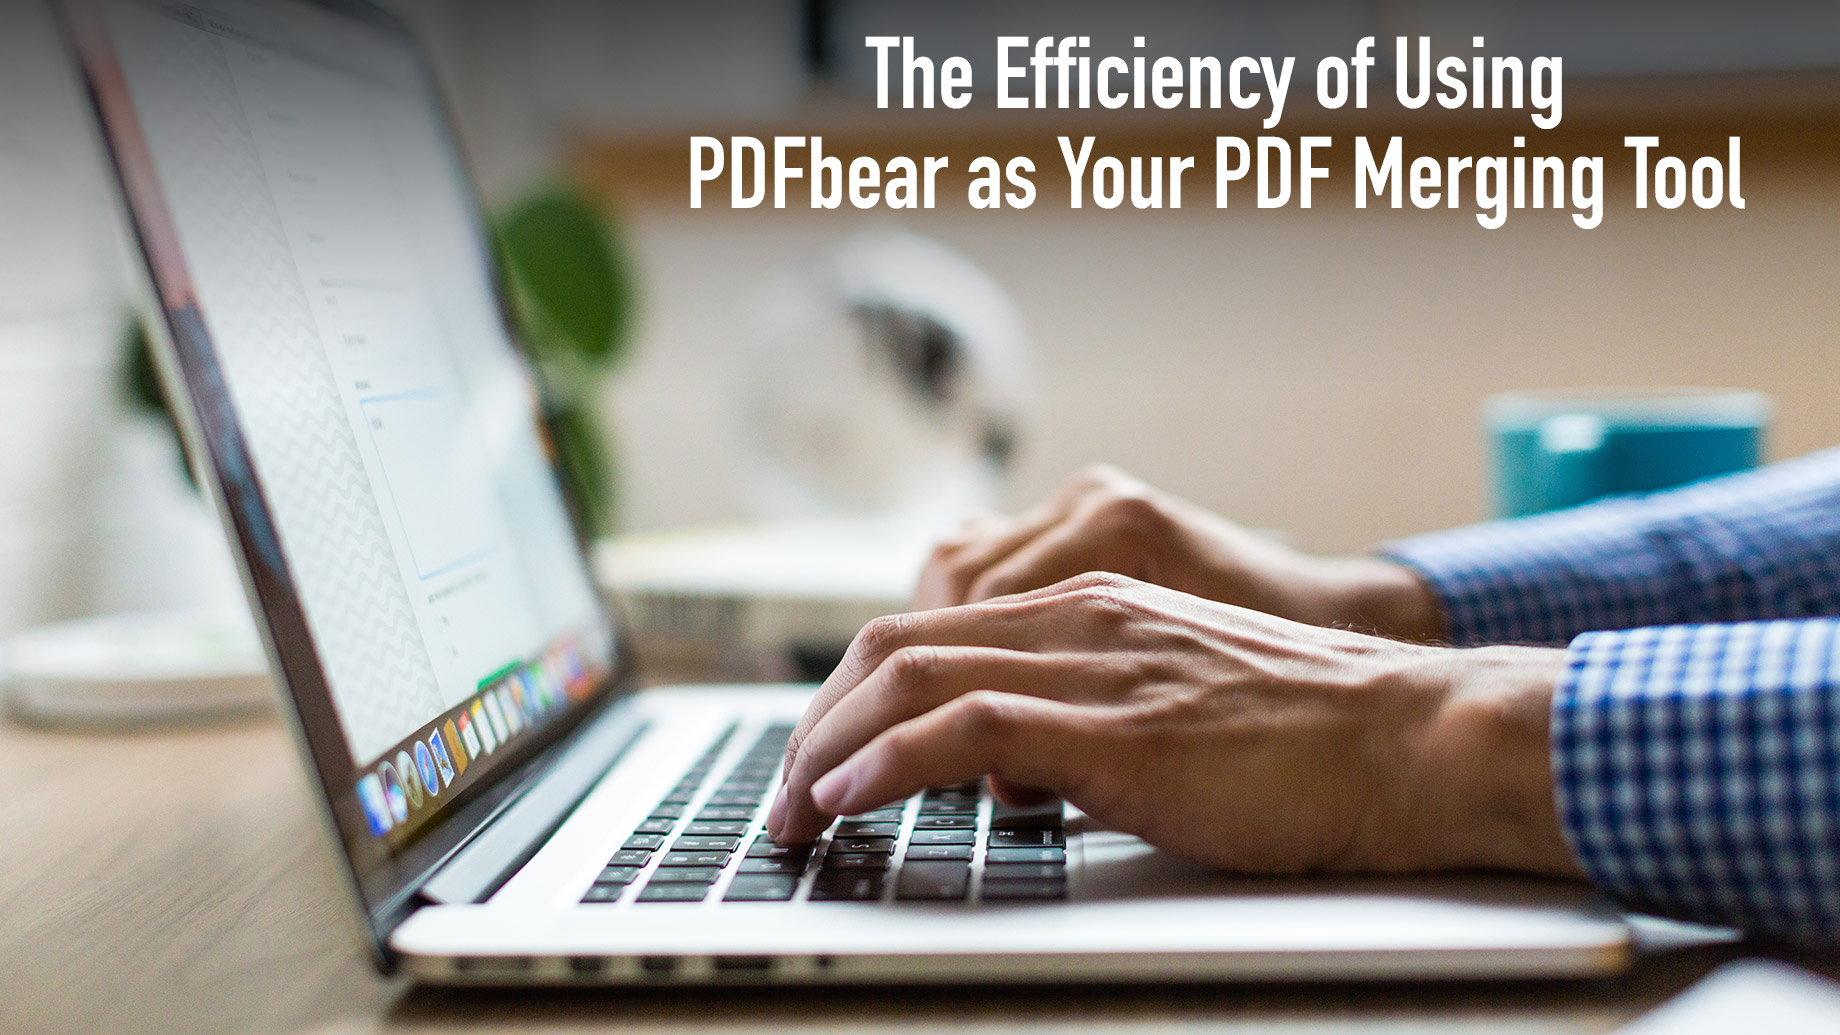 The Efficiency of Using PDFbear as Your PDF Merging Tool